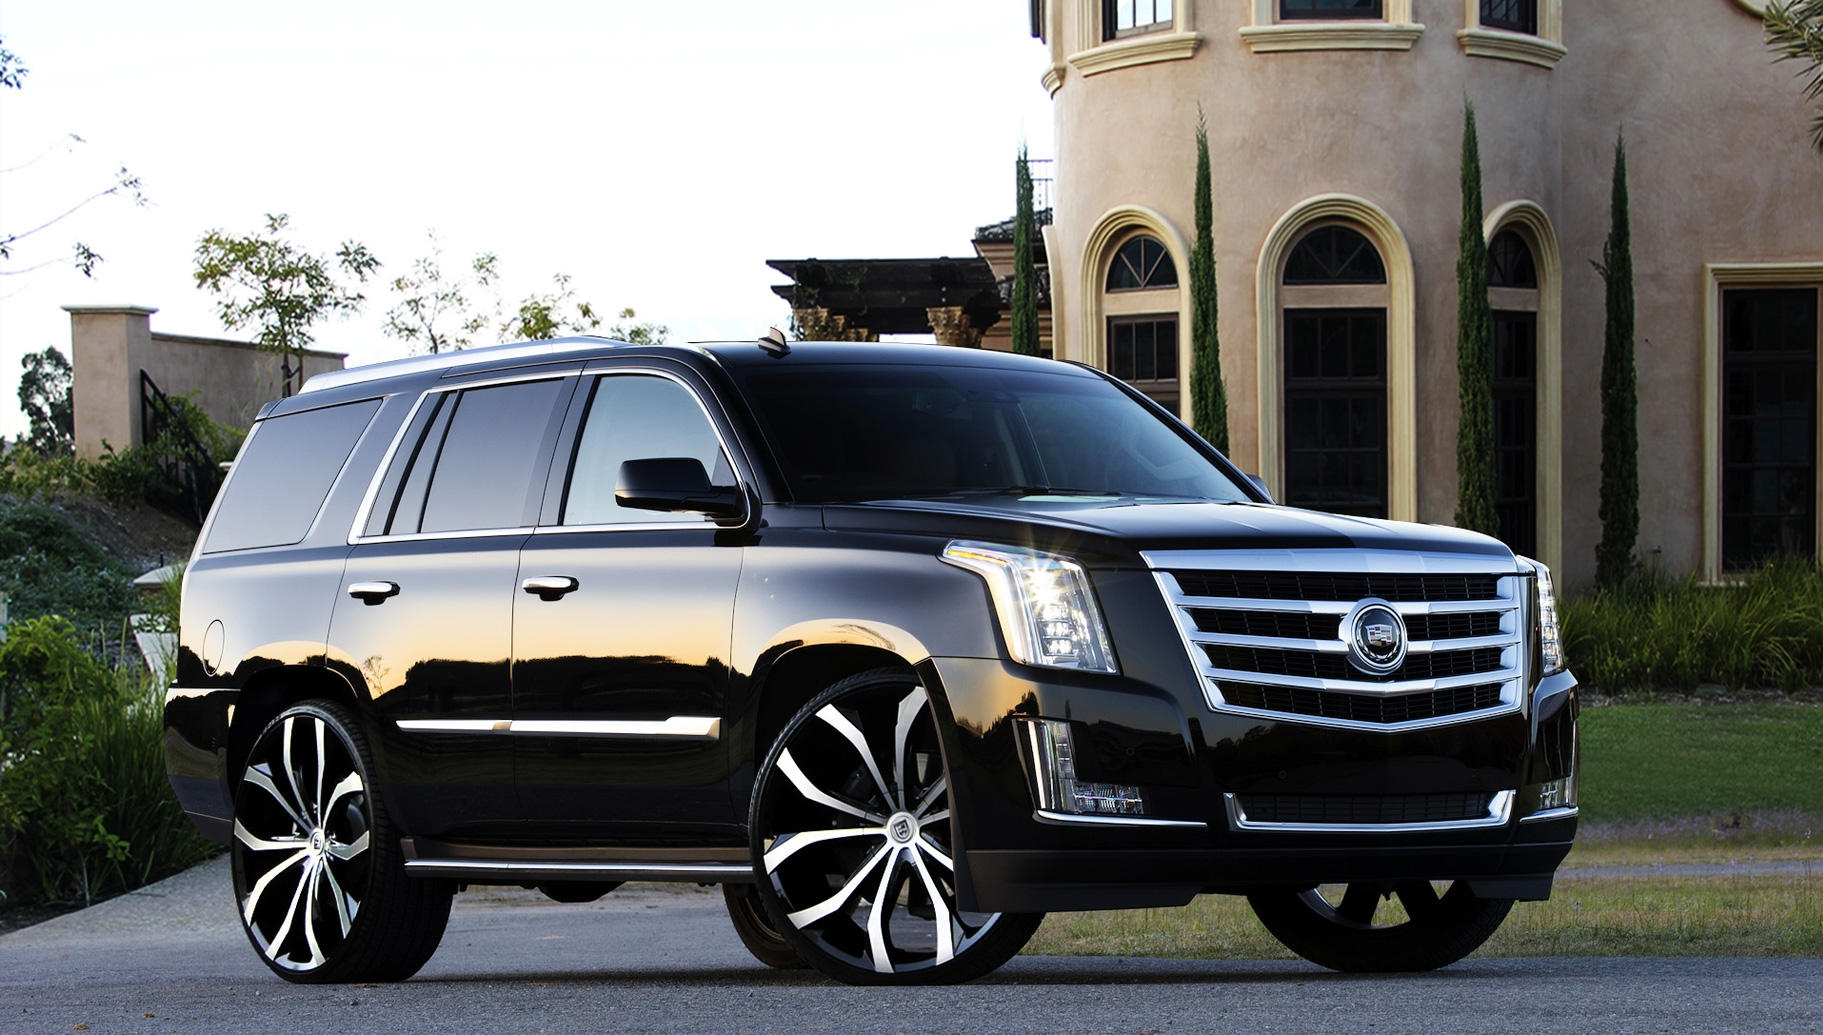 specs review throughout with the release prices new escalade date luxury ext redesign pricing cadillac